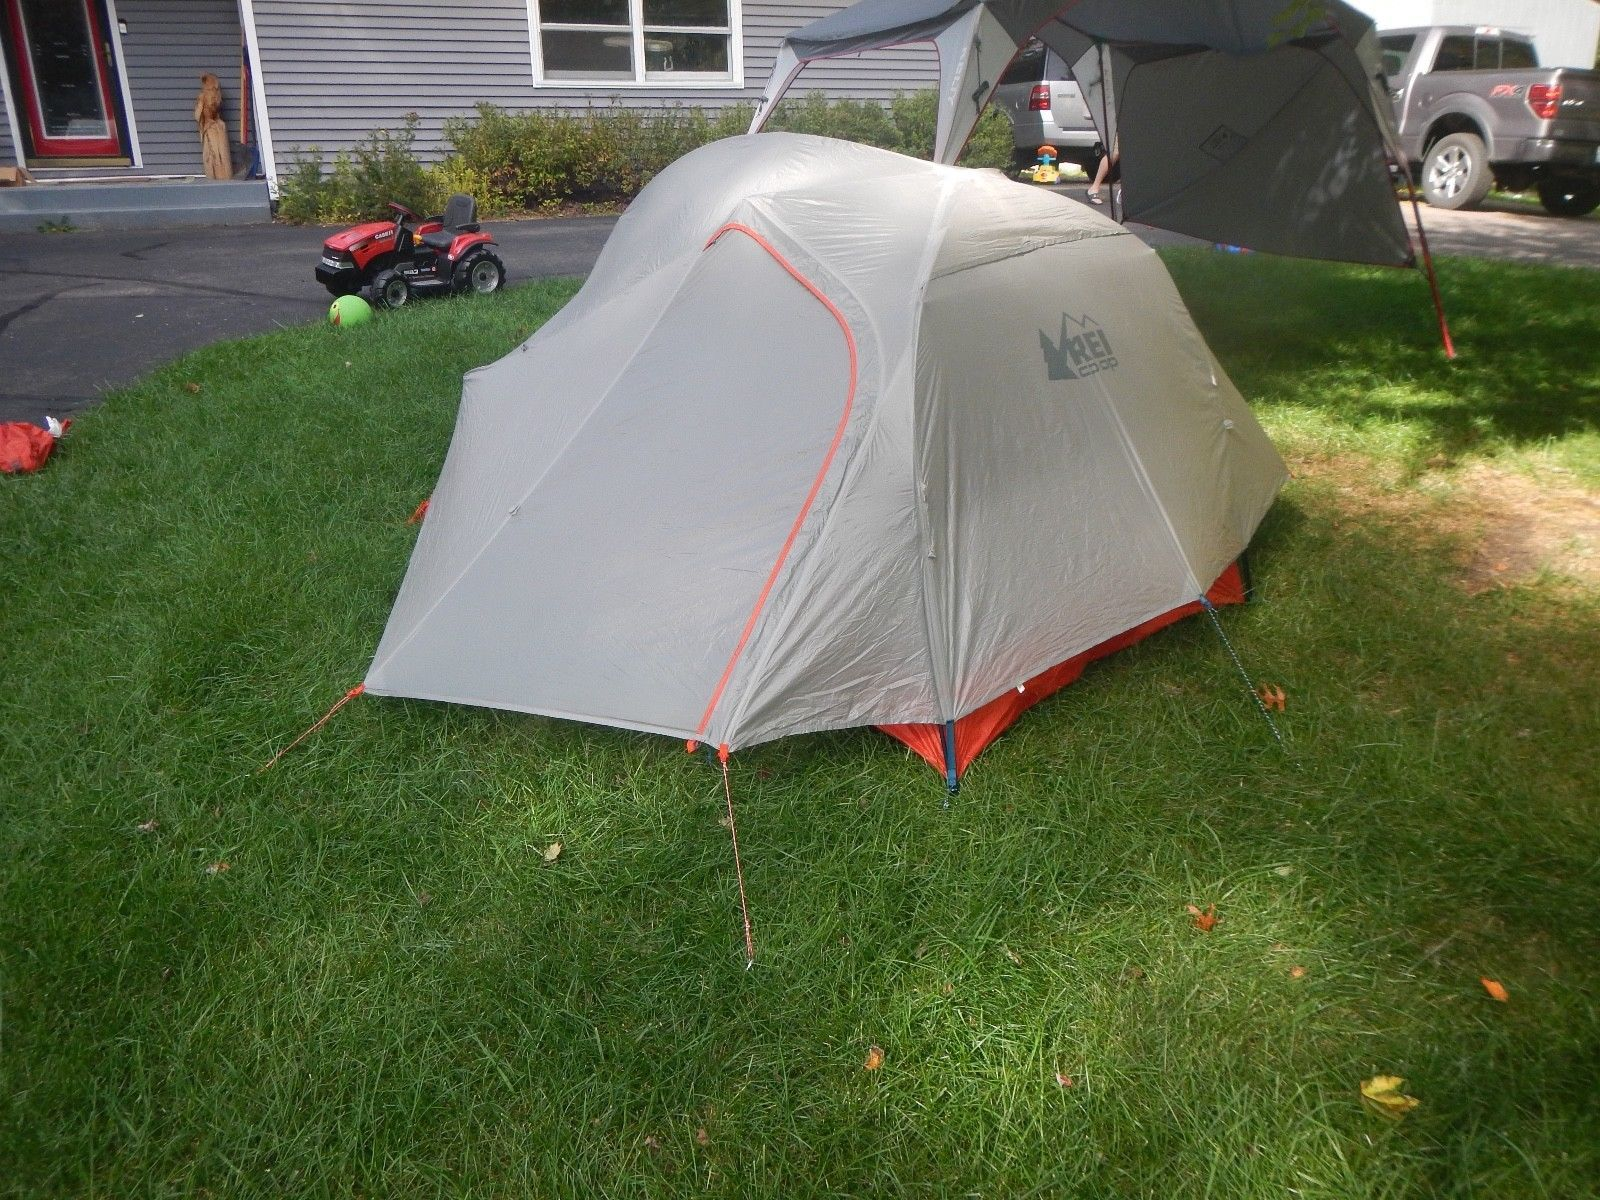 2017 REI Co-Op Quarter Dome 2 Tent with Footprint backpacking c&ing & 2017 REI Co-Op Quarter Dome 2 Tent with Footprint backpacking ...